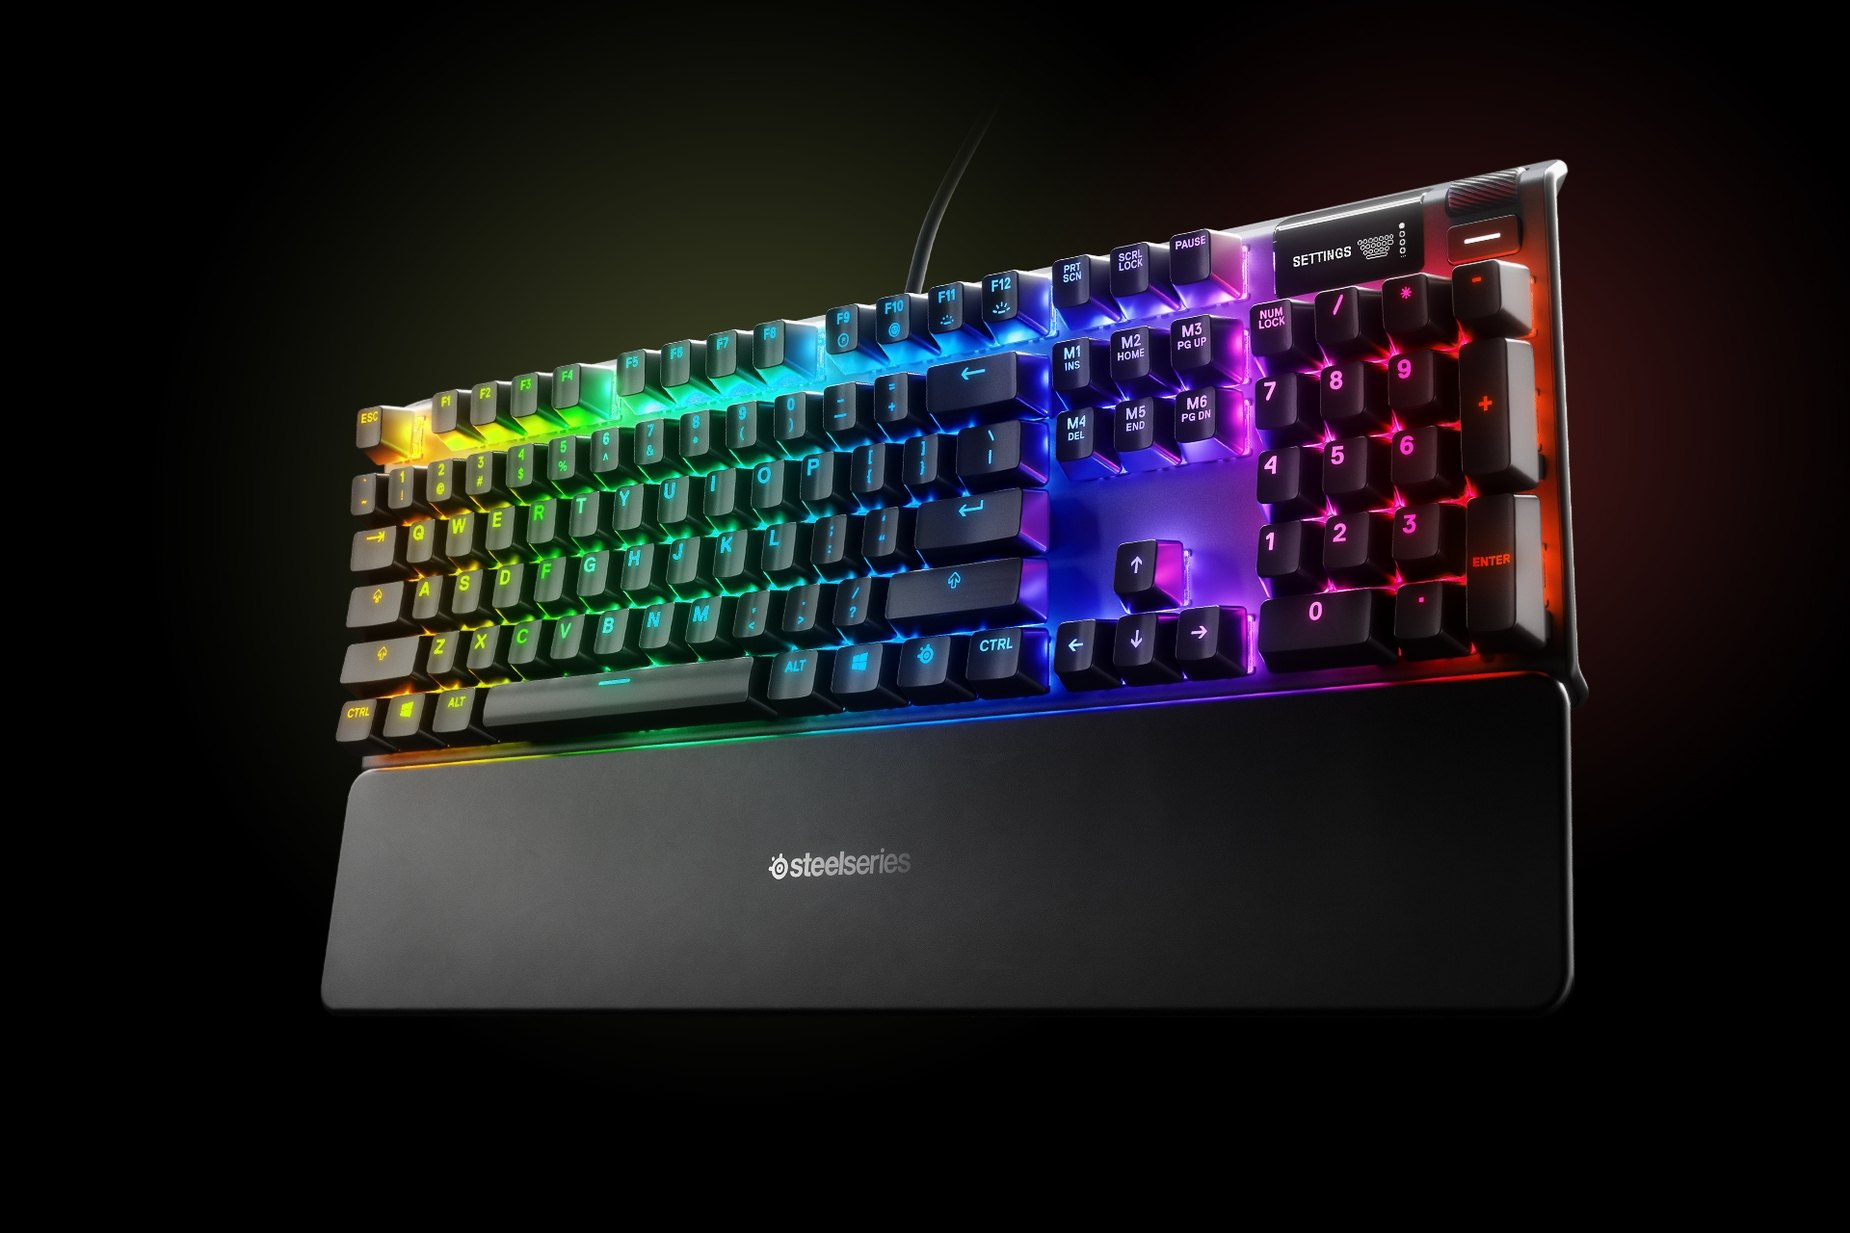 German - Apex 7 (Red Switch) gaming keyboard with the illumination lit up on dark background, also shows the OLED screen and controls used to change settings and adjust audio